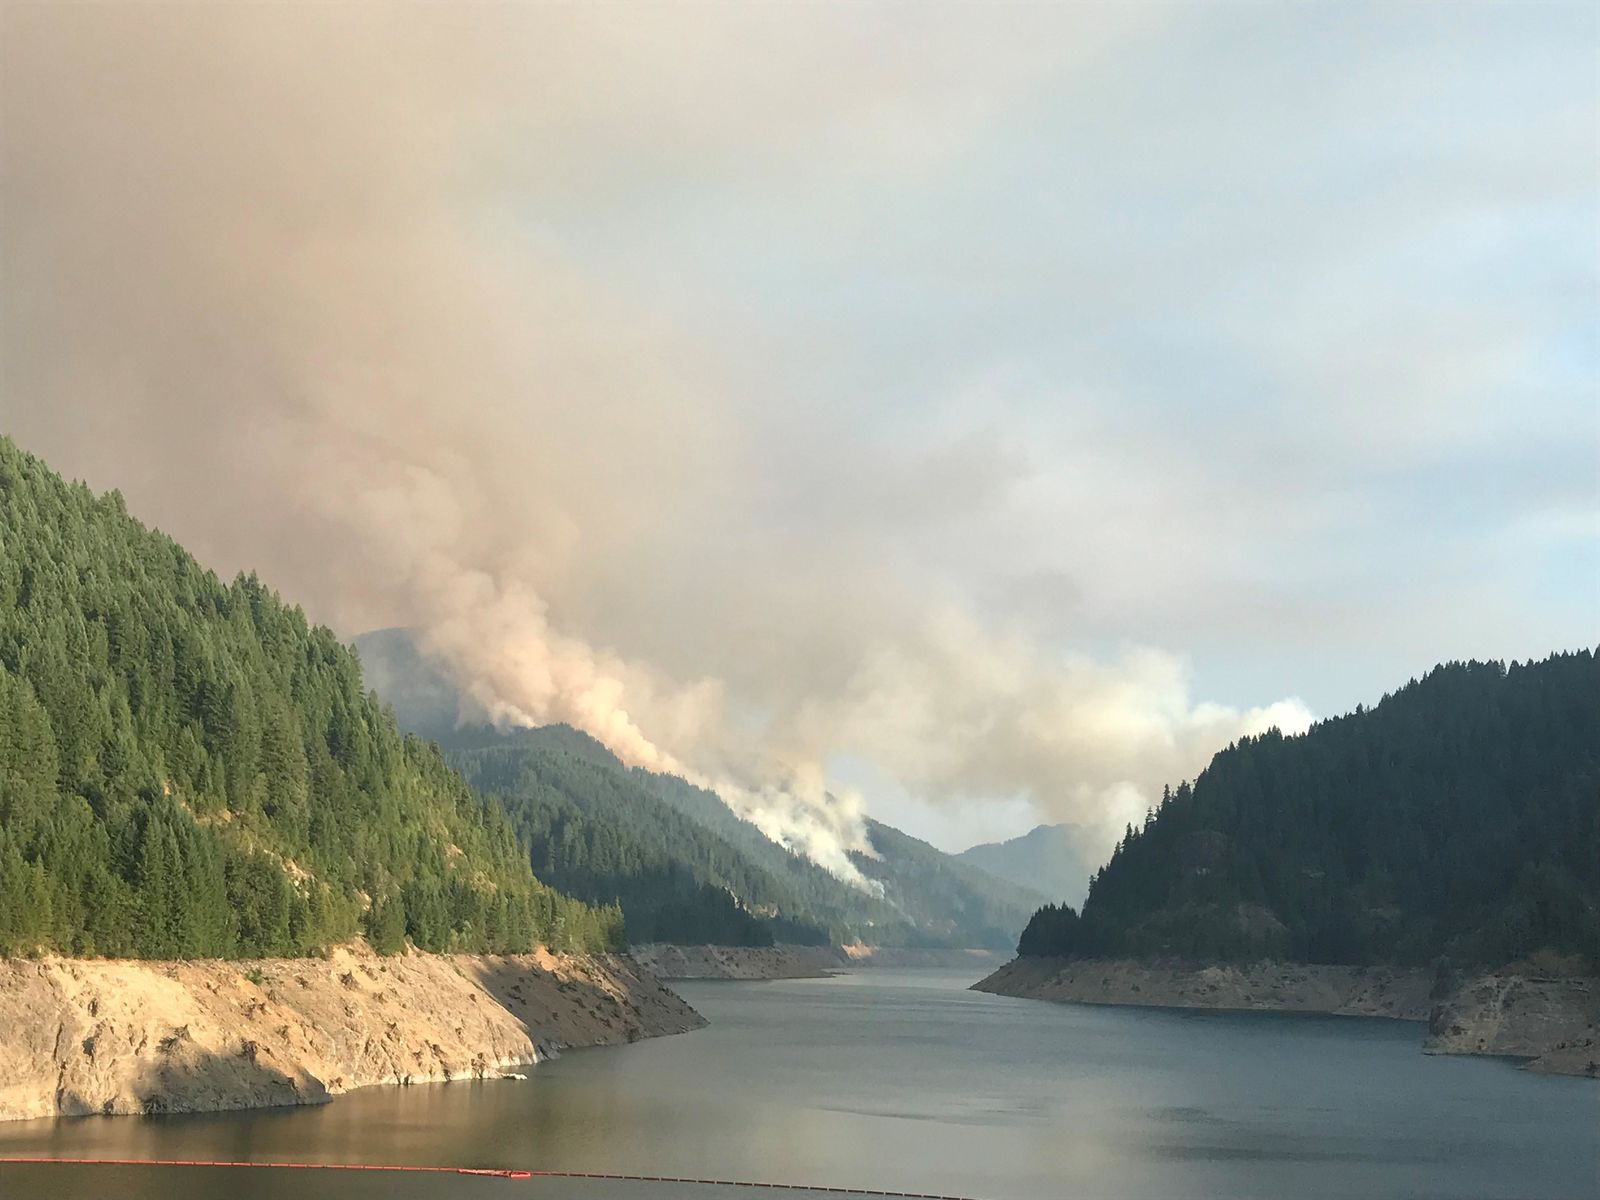 The fire broke out Sunday near Terwilliger Hot Springs and quickly grew to 110 acres in a matter of hours, officials said. (August 19, 2018, photo via InciWeb)